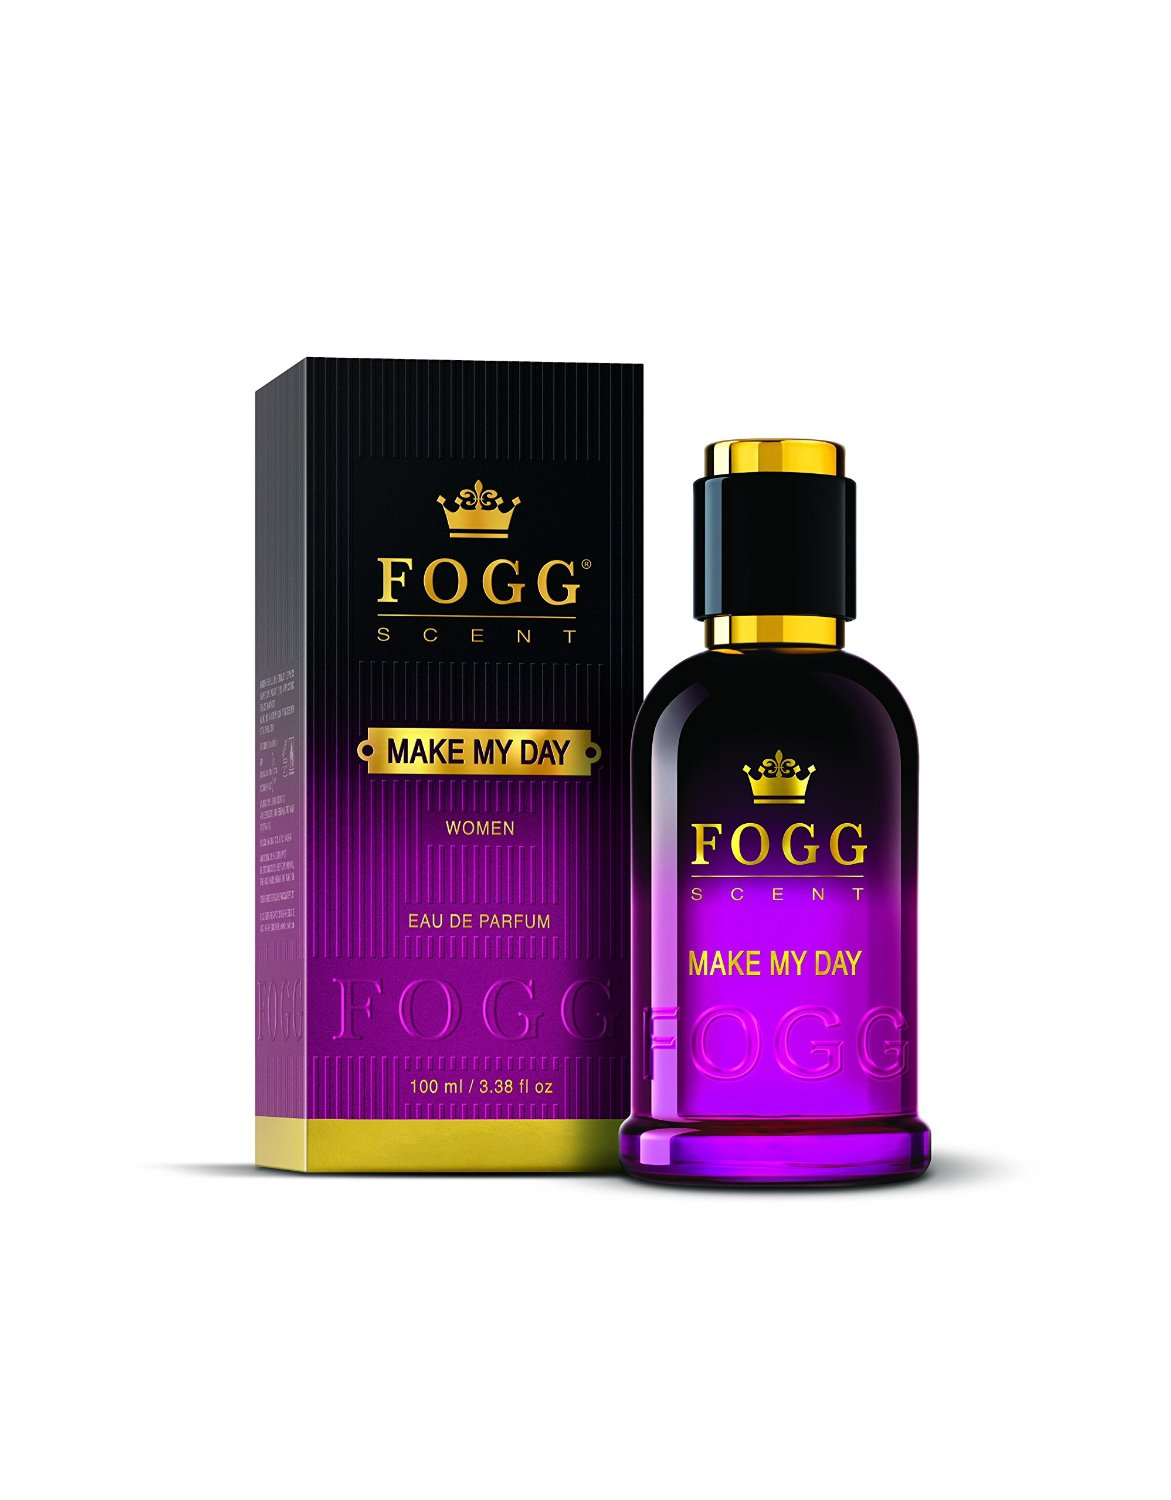 [53% Claimed] Fogg Make My Day Scent For Women, 100ml at 30% Off discount offer